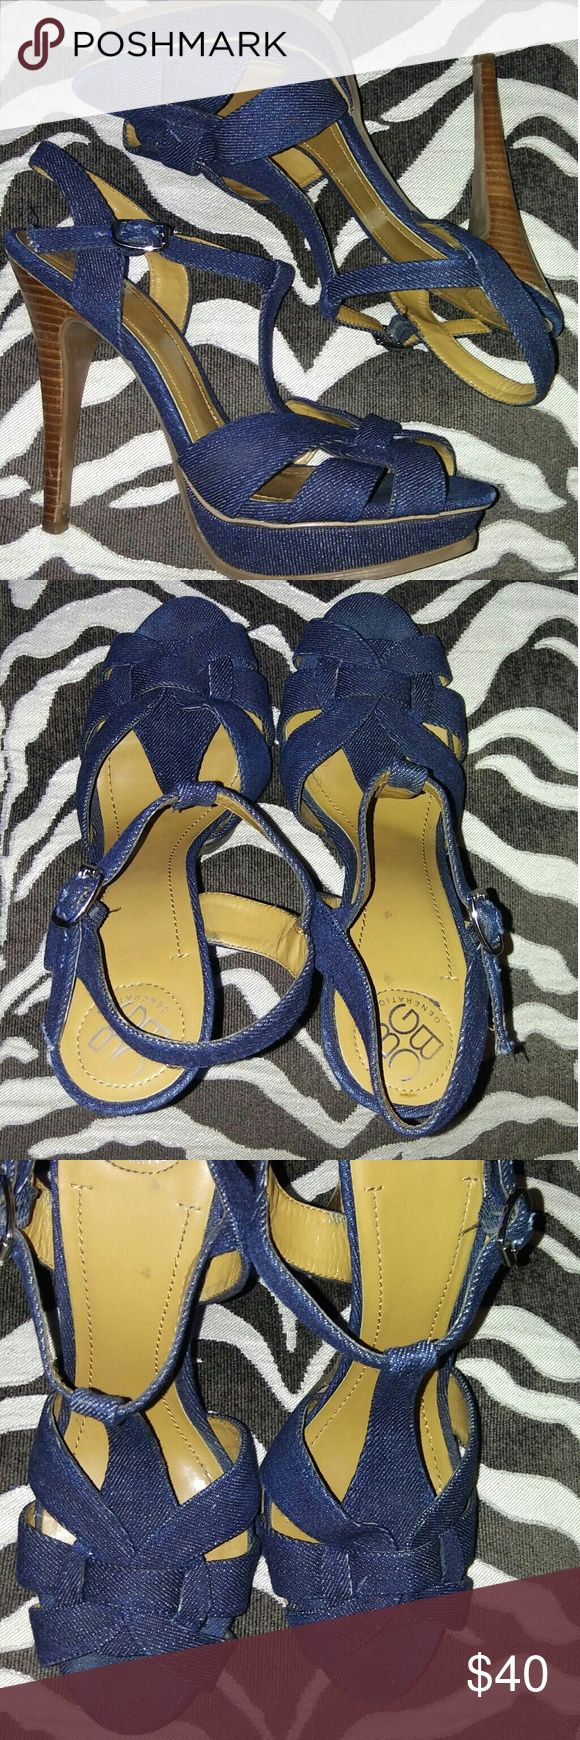 BCBGeneration Denim Jean Tribute Sandal A beautiful, versatile denim sandal worn 1 time!! Like new! Perfect for spring and summer!!! If you would like more pics, just ask.  Thanks!! BCBGeneration Shoes Sandals